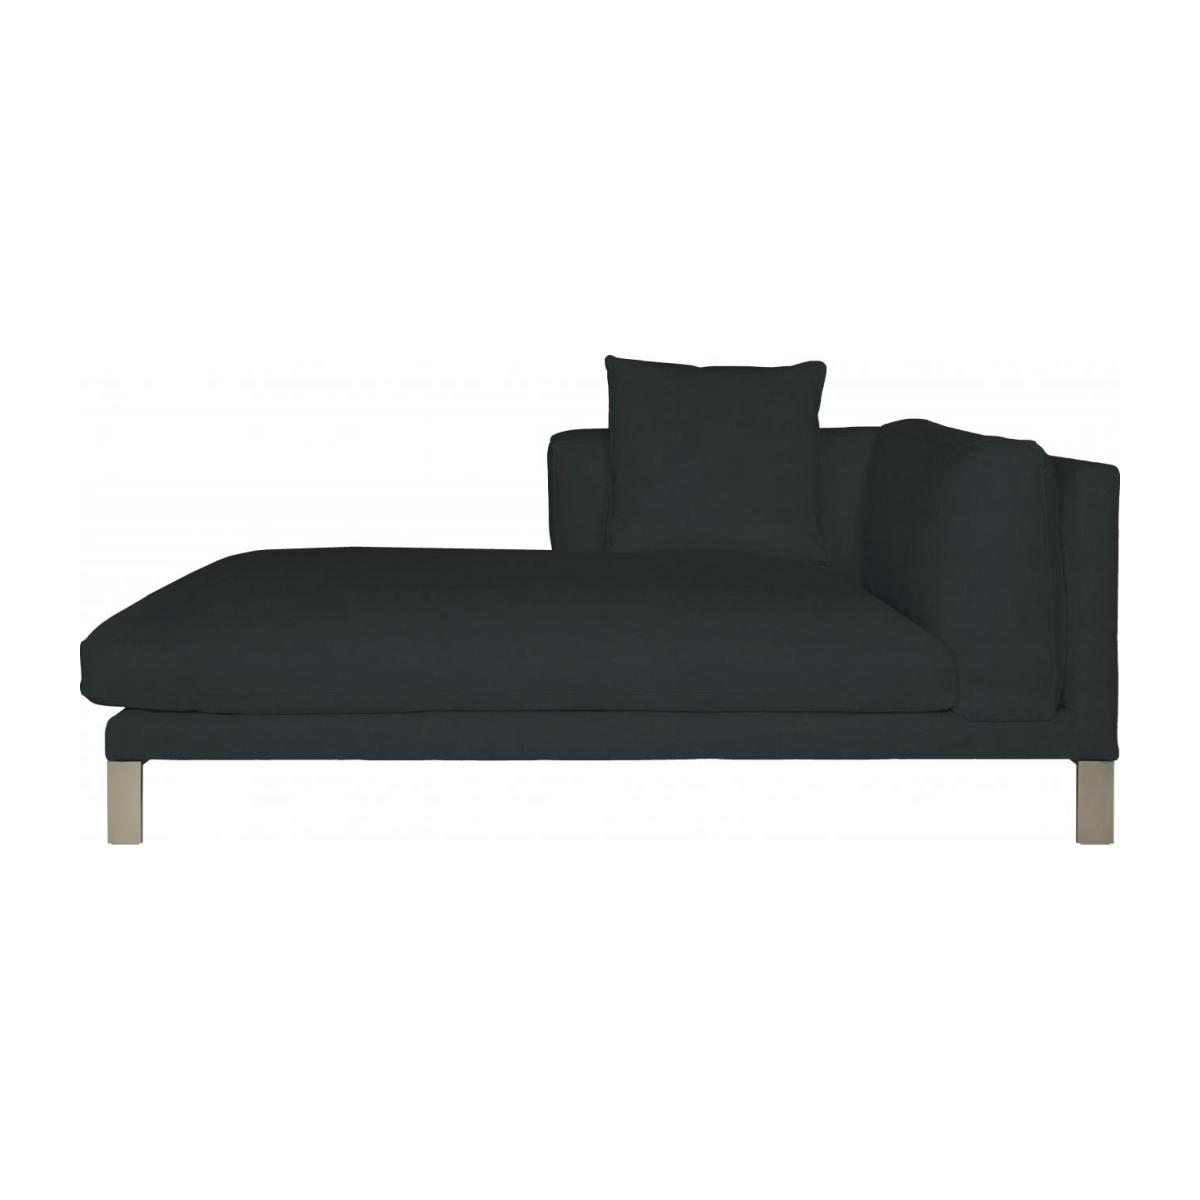 Leather left-arm chaise longue n°4